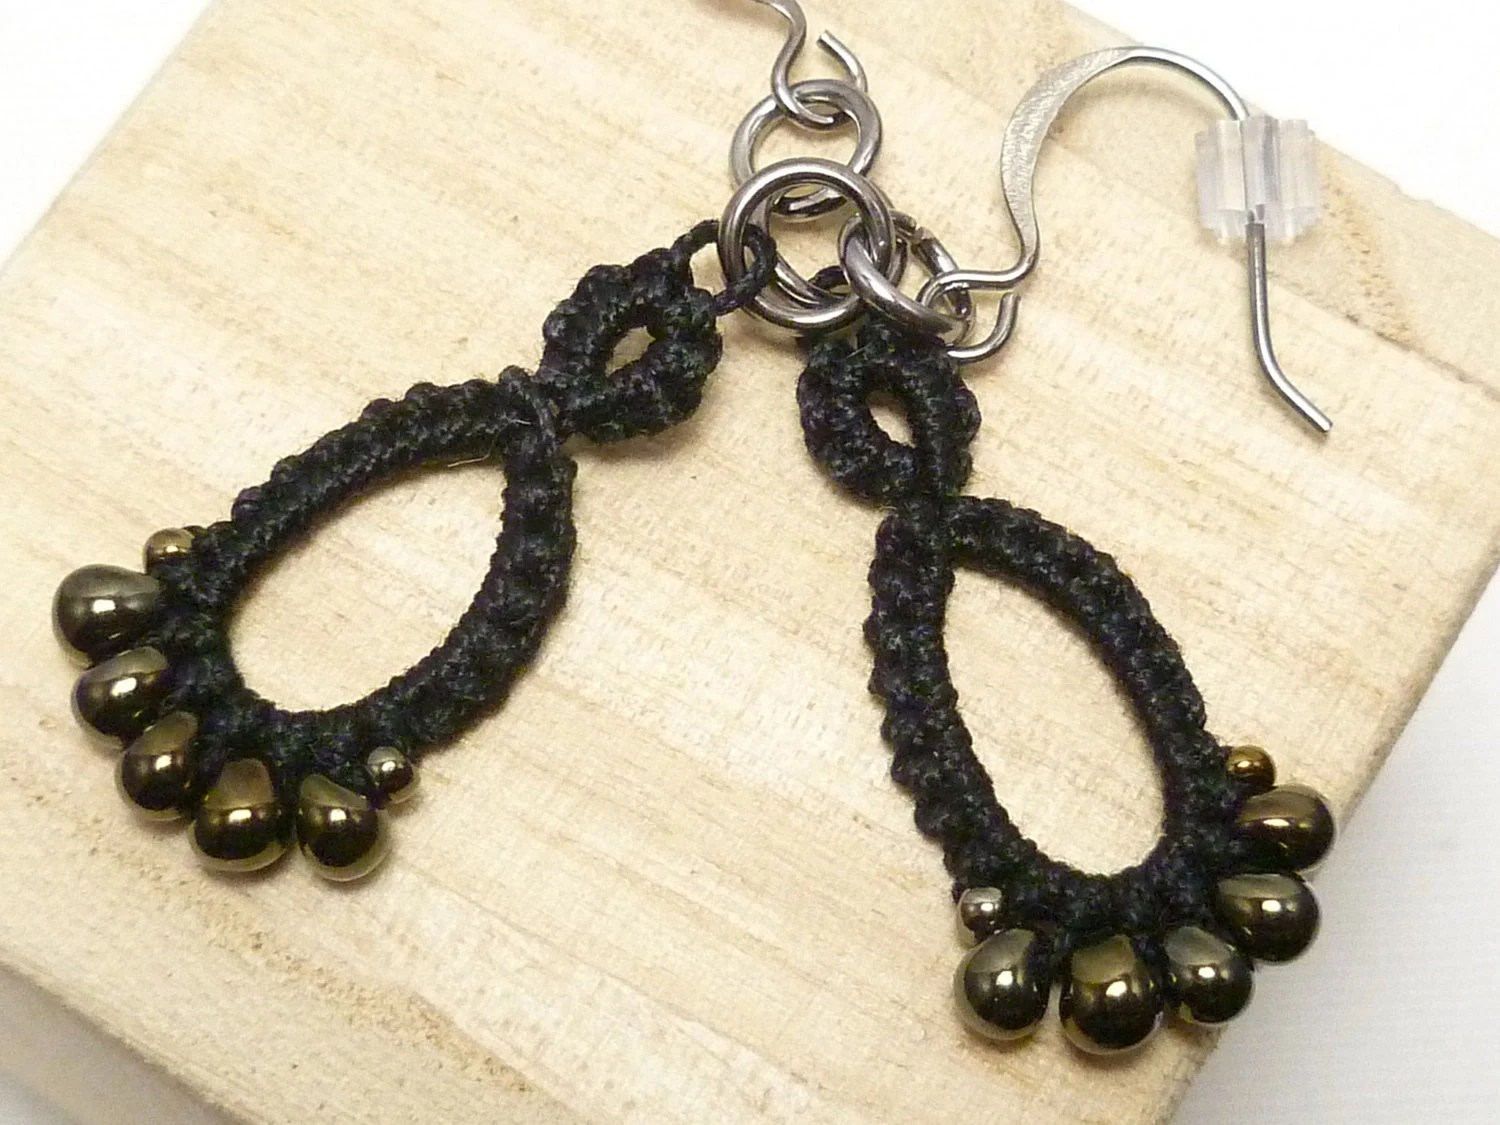 Tatted jewelry earrings in black with dark gold glass -Drips